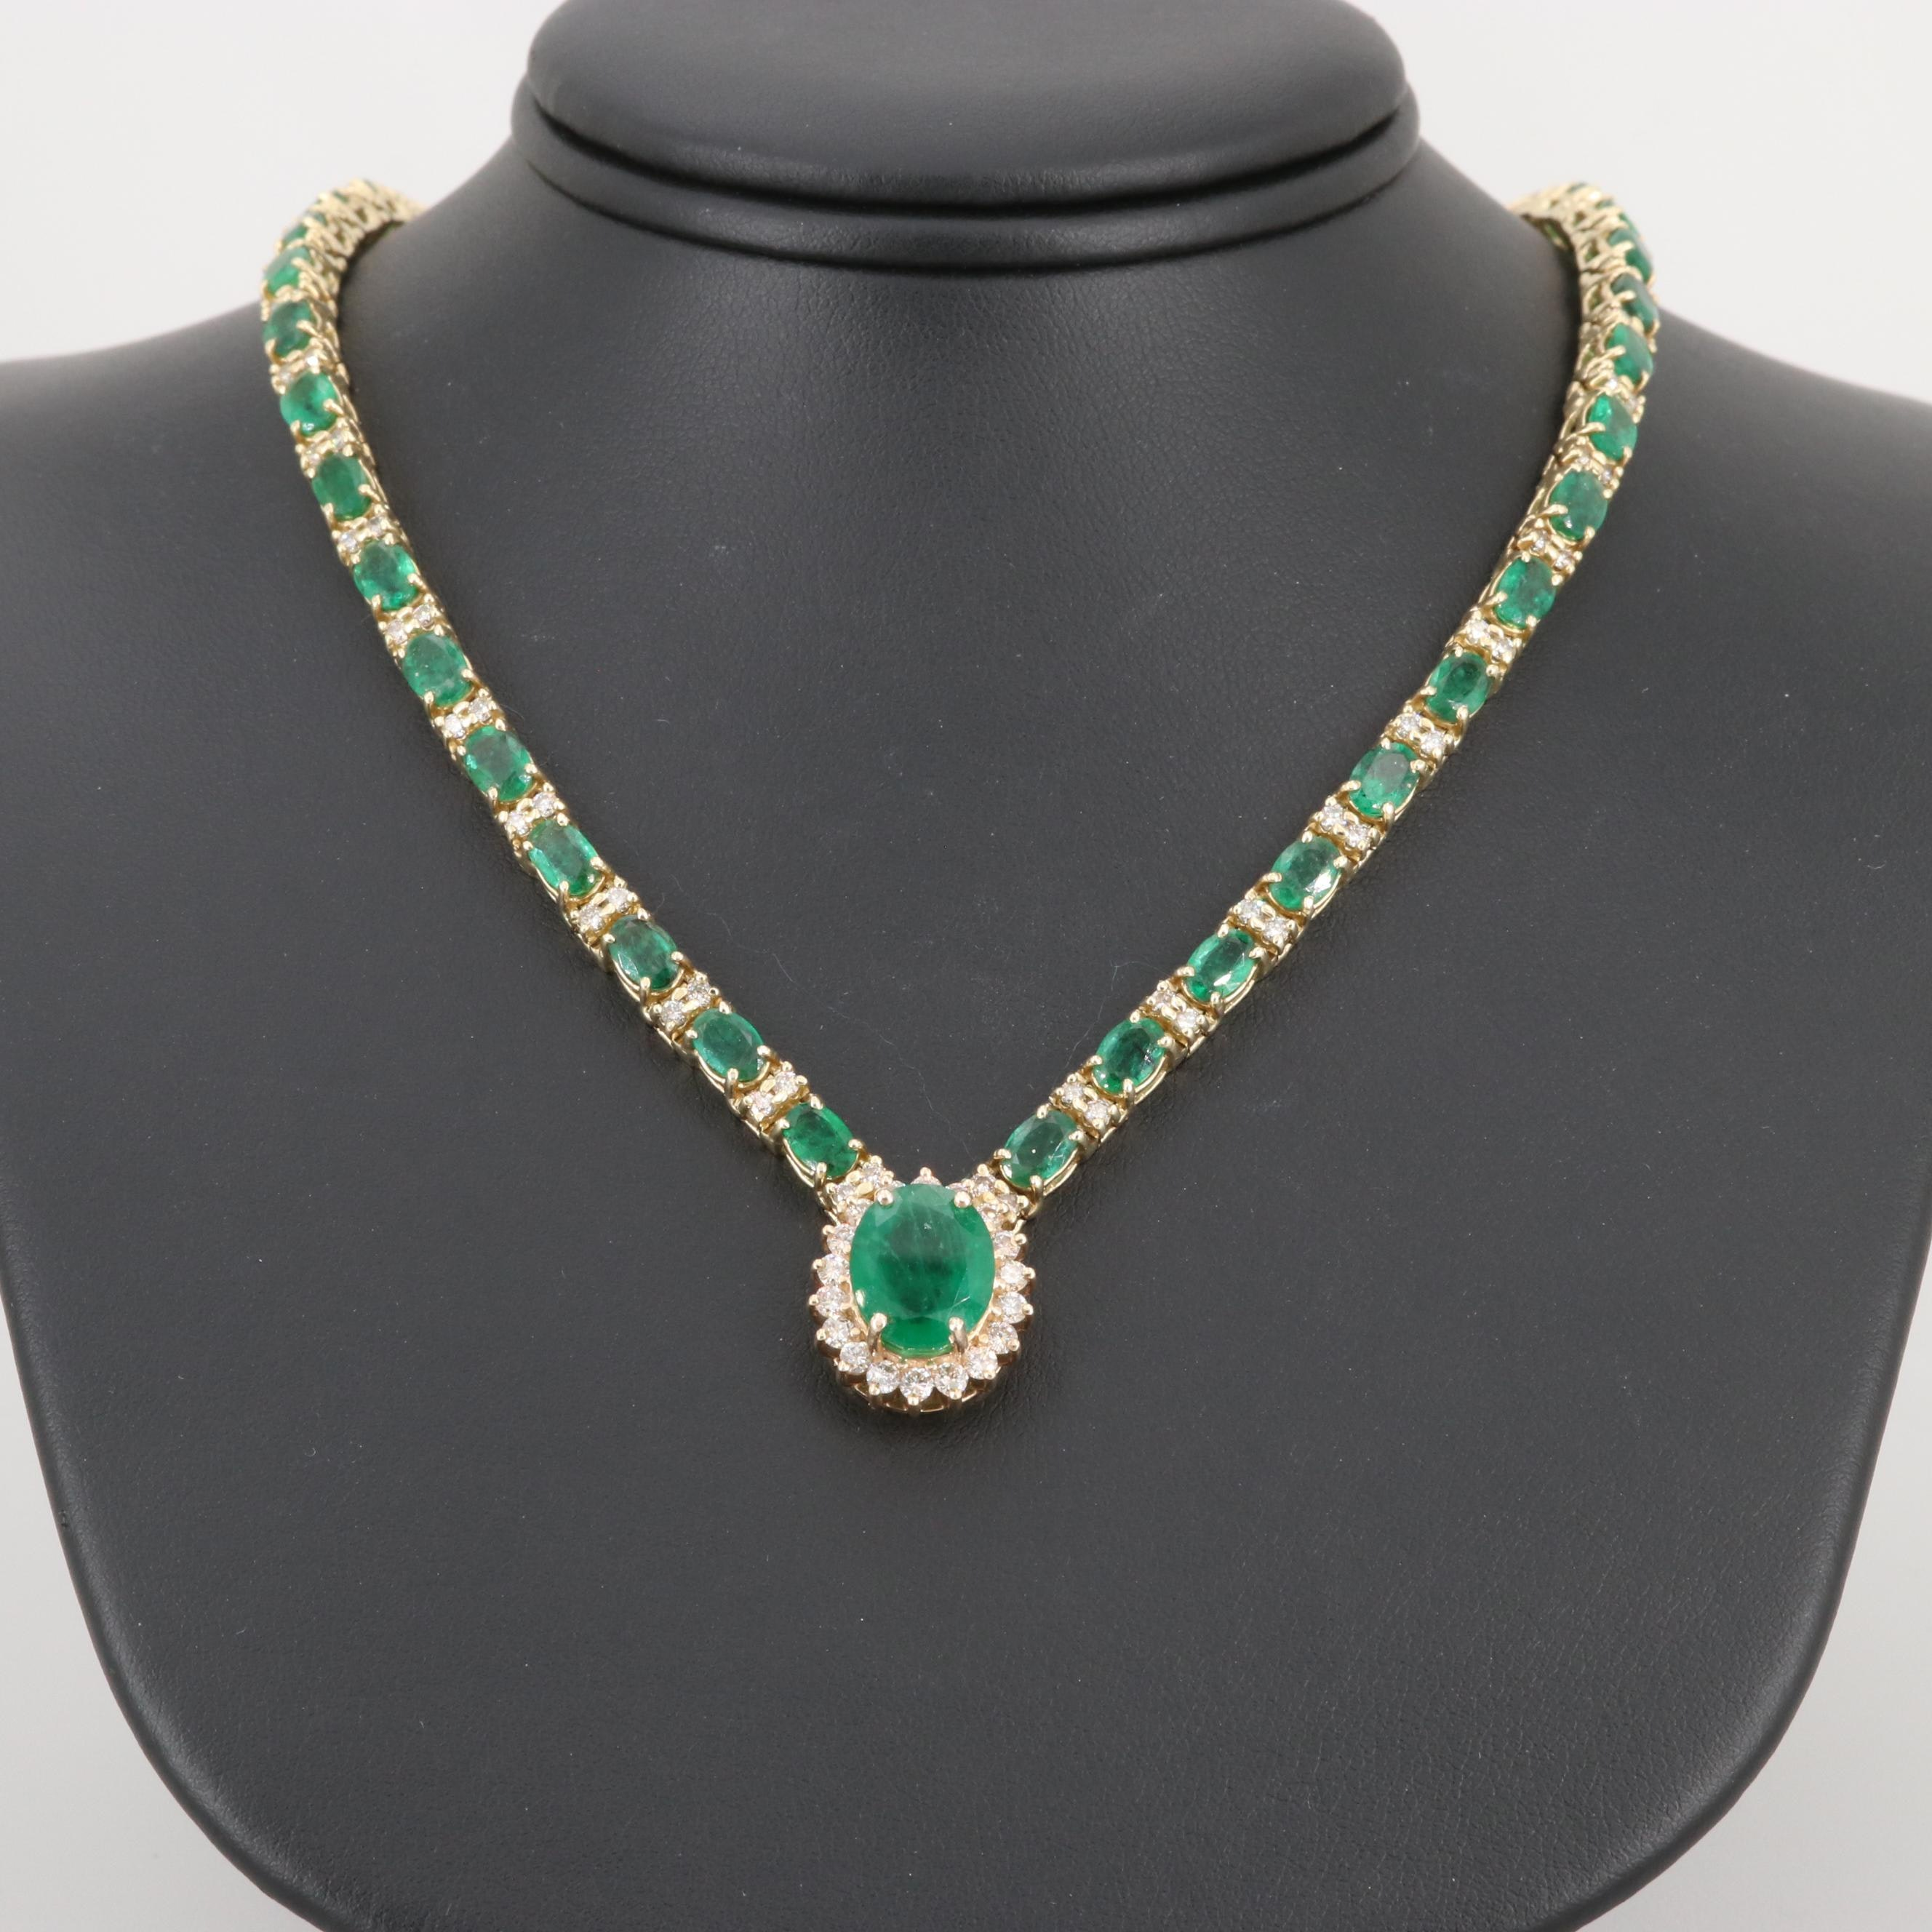 14K Yellow Gold 3.44 CT Emerald and 3.07 CTW Diamond Necklace